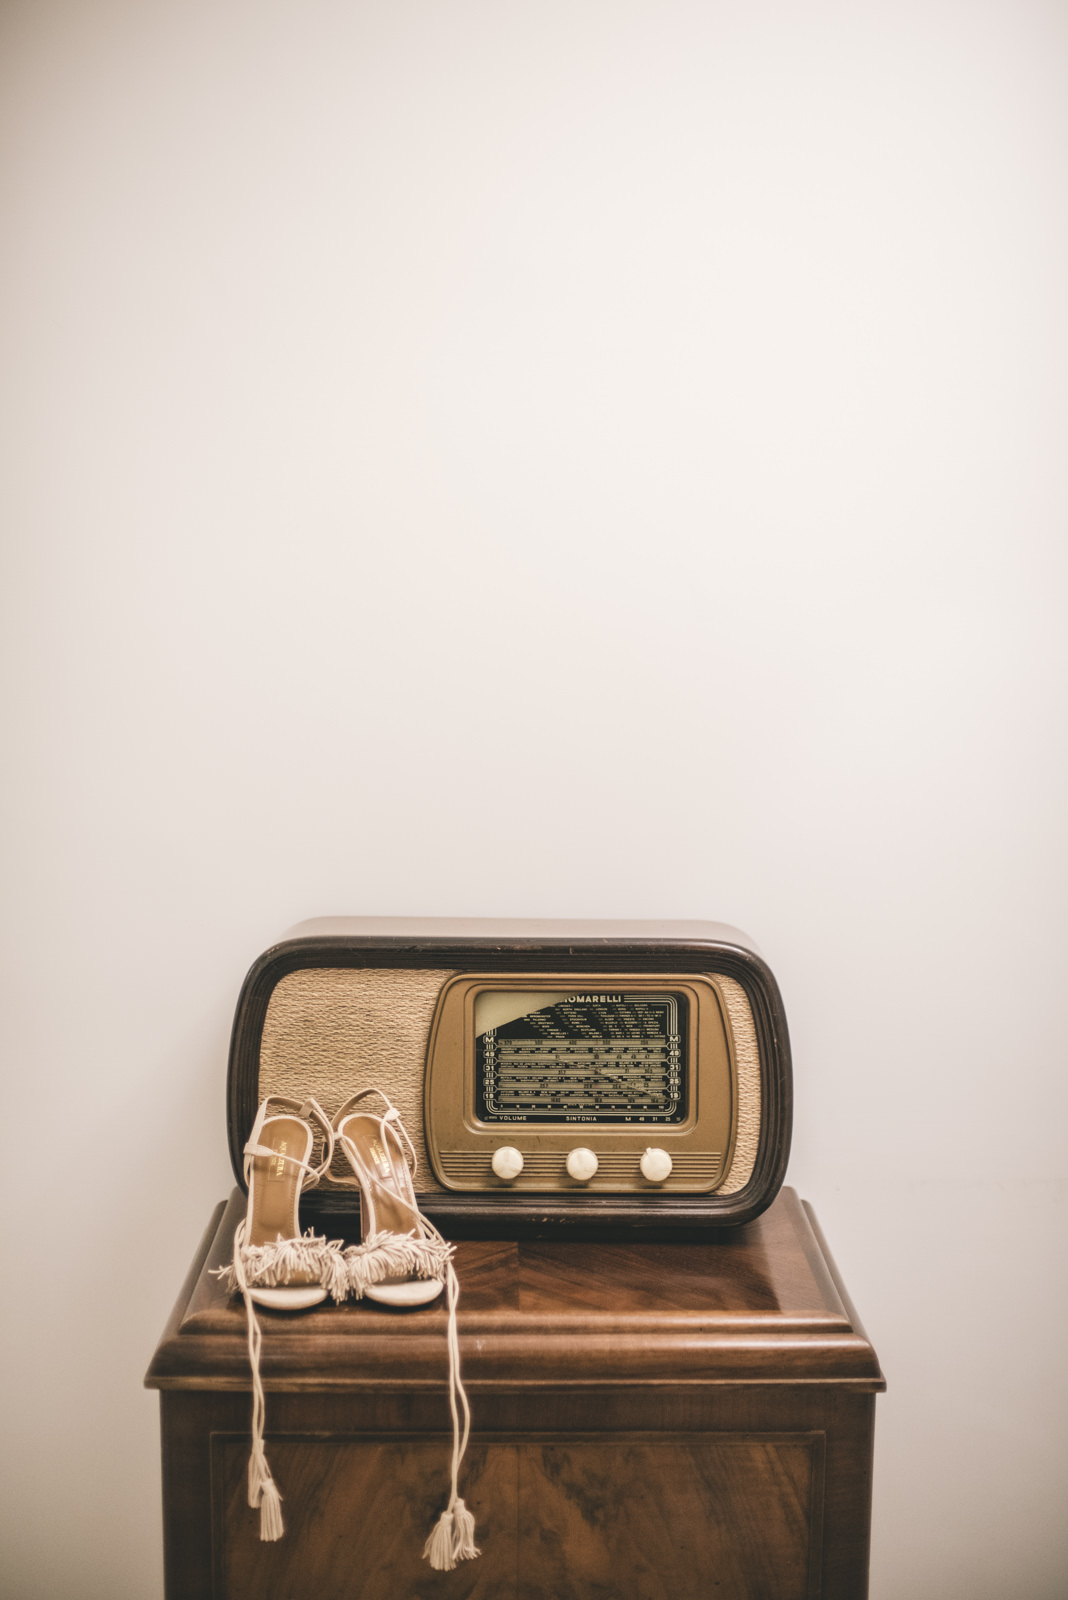 bride's shoes next to an old radio